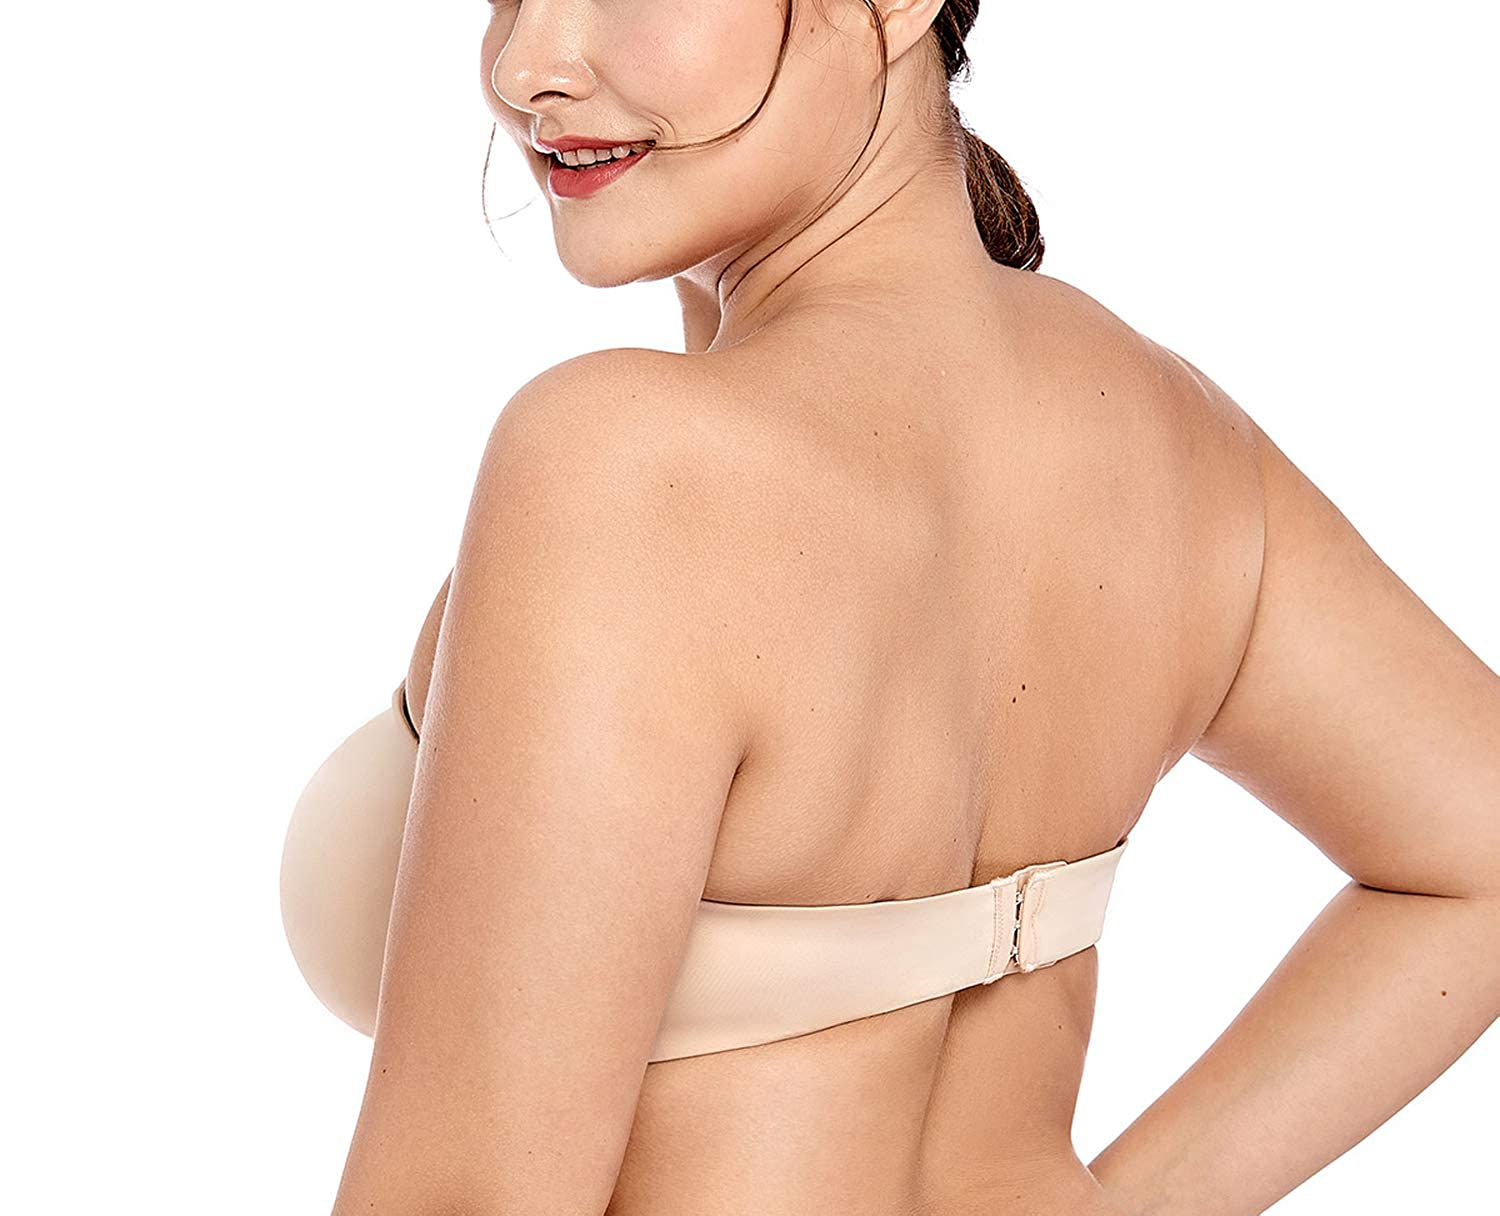 EveyWell Womens Smooth Seamless Invisible Underwire Strapless Minimizer Bra,Black01,F,38